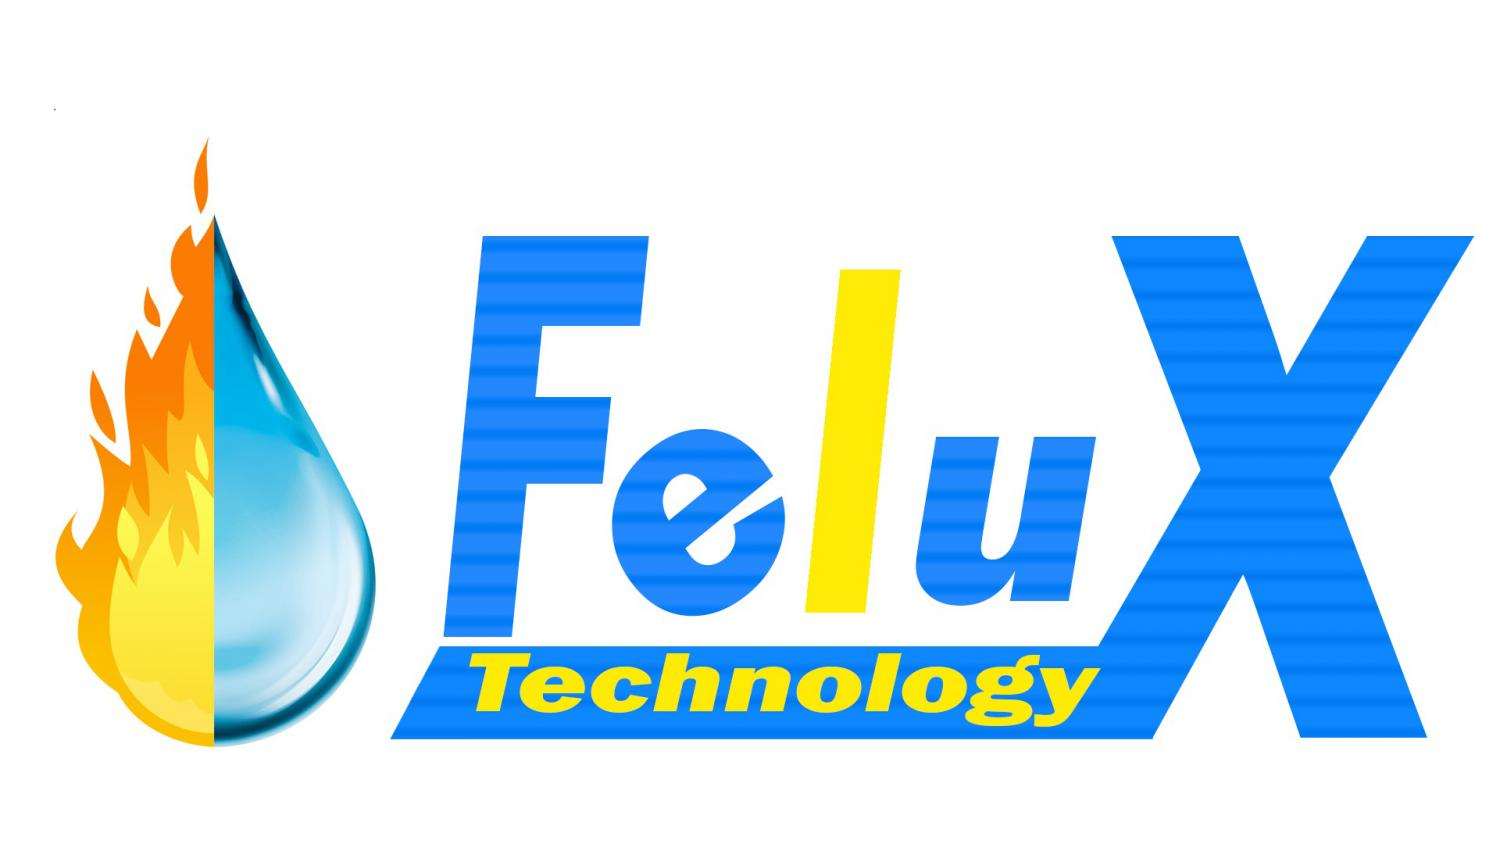 FeluX TechnologY